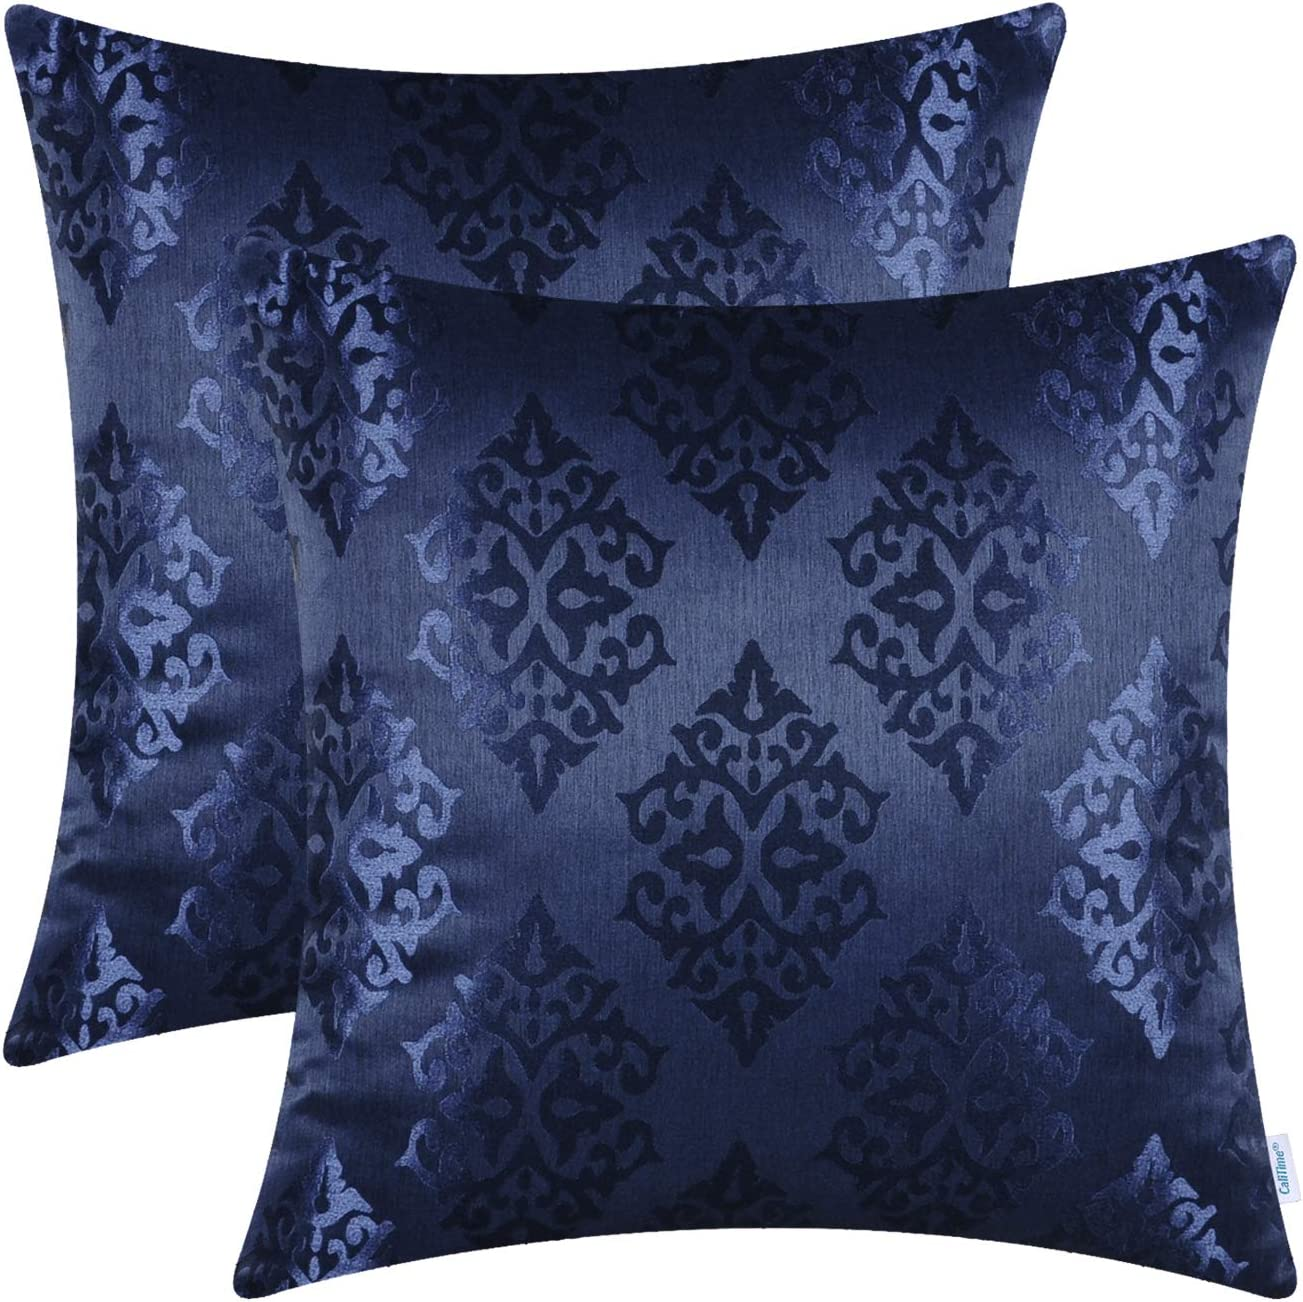 CaliTime Pack of 2 Throw Pillow Covers Cases for Couch Sofa Home Decoration Vintage Damask Shining & Dull Contrast 18 X 18 Inches Navy Blue